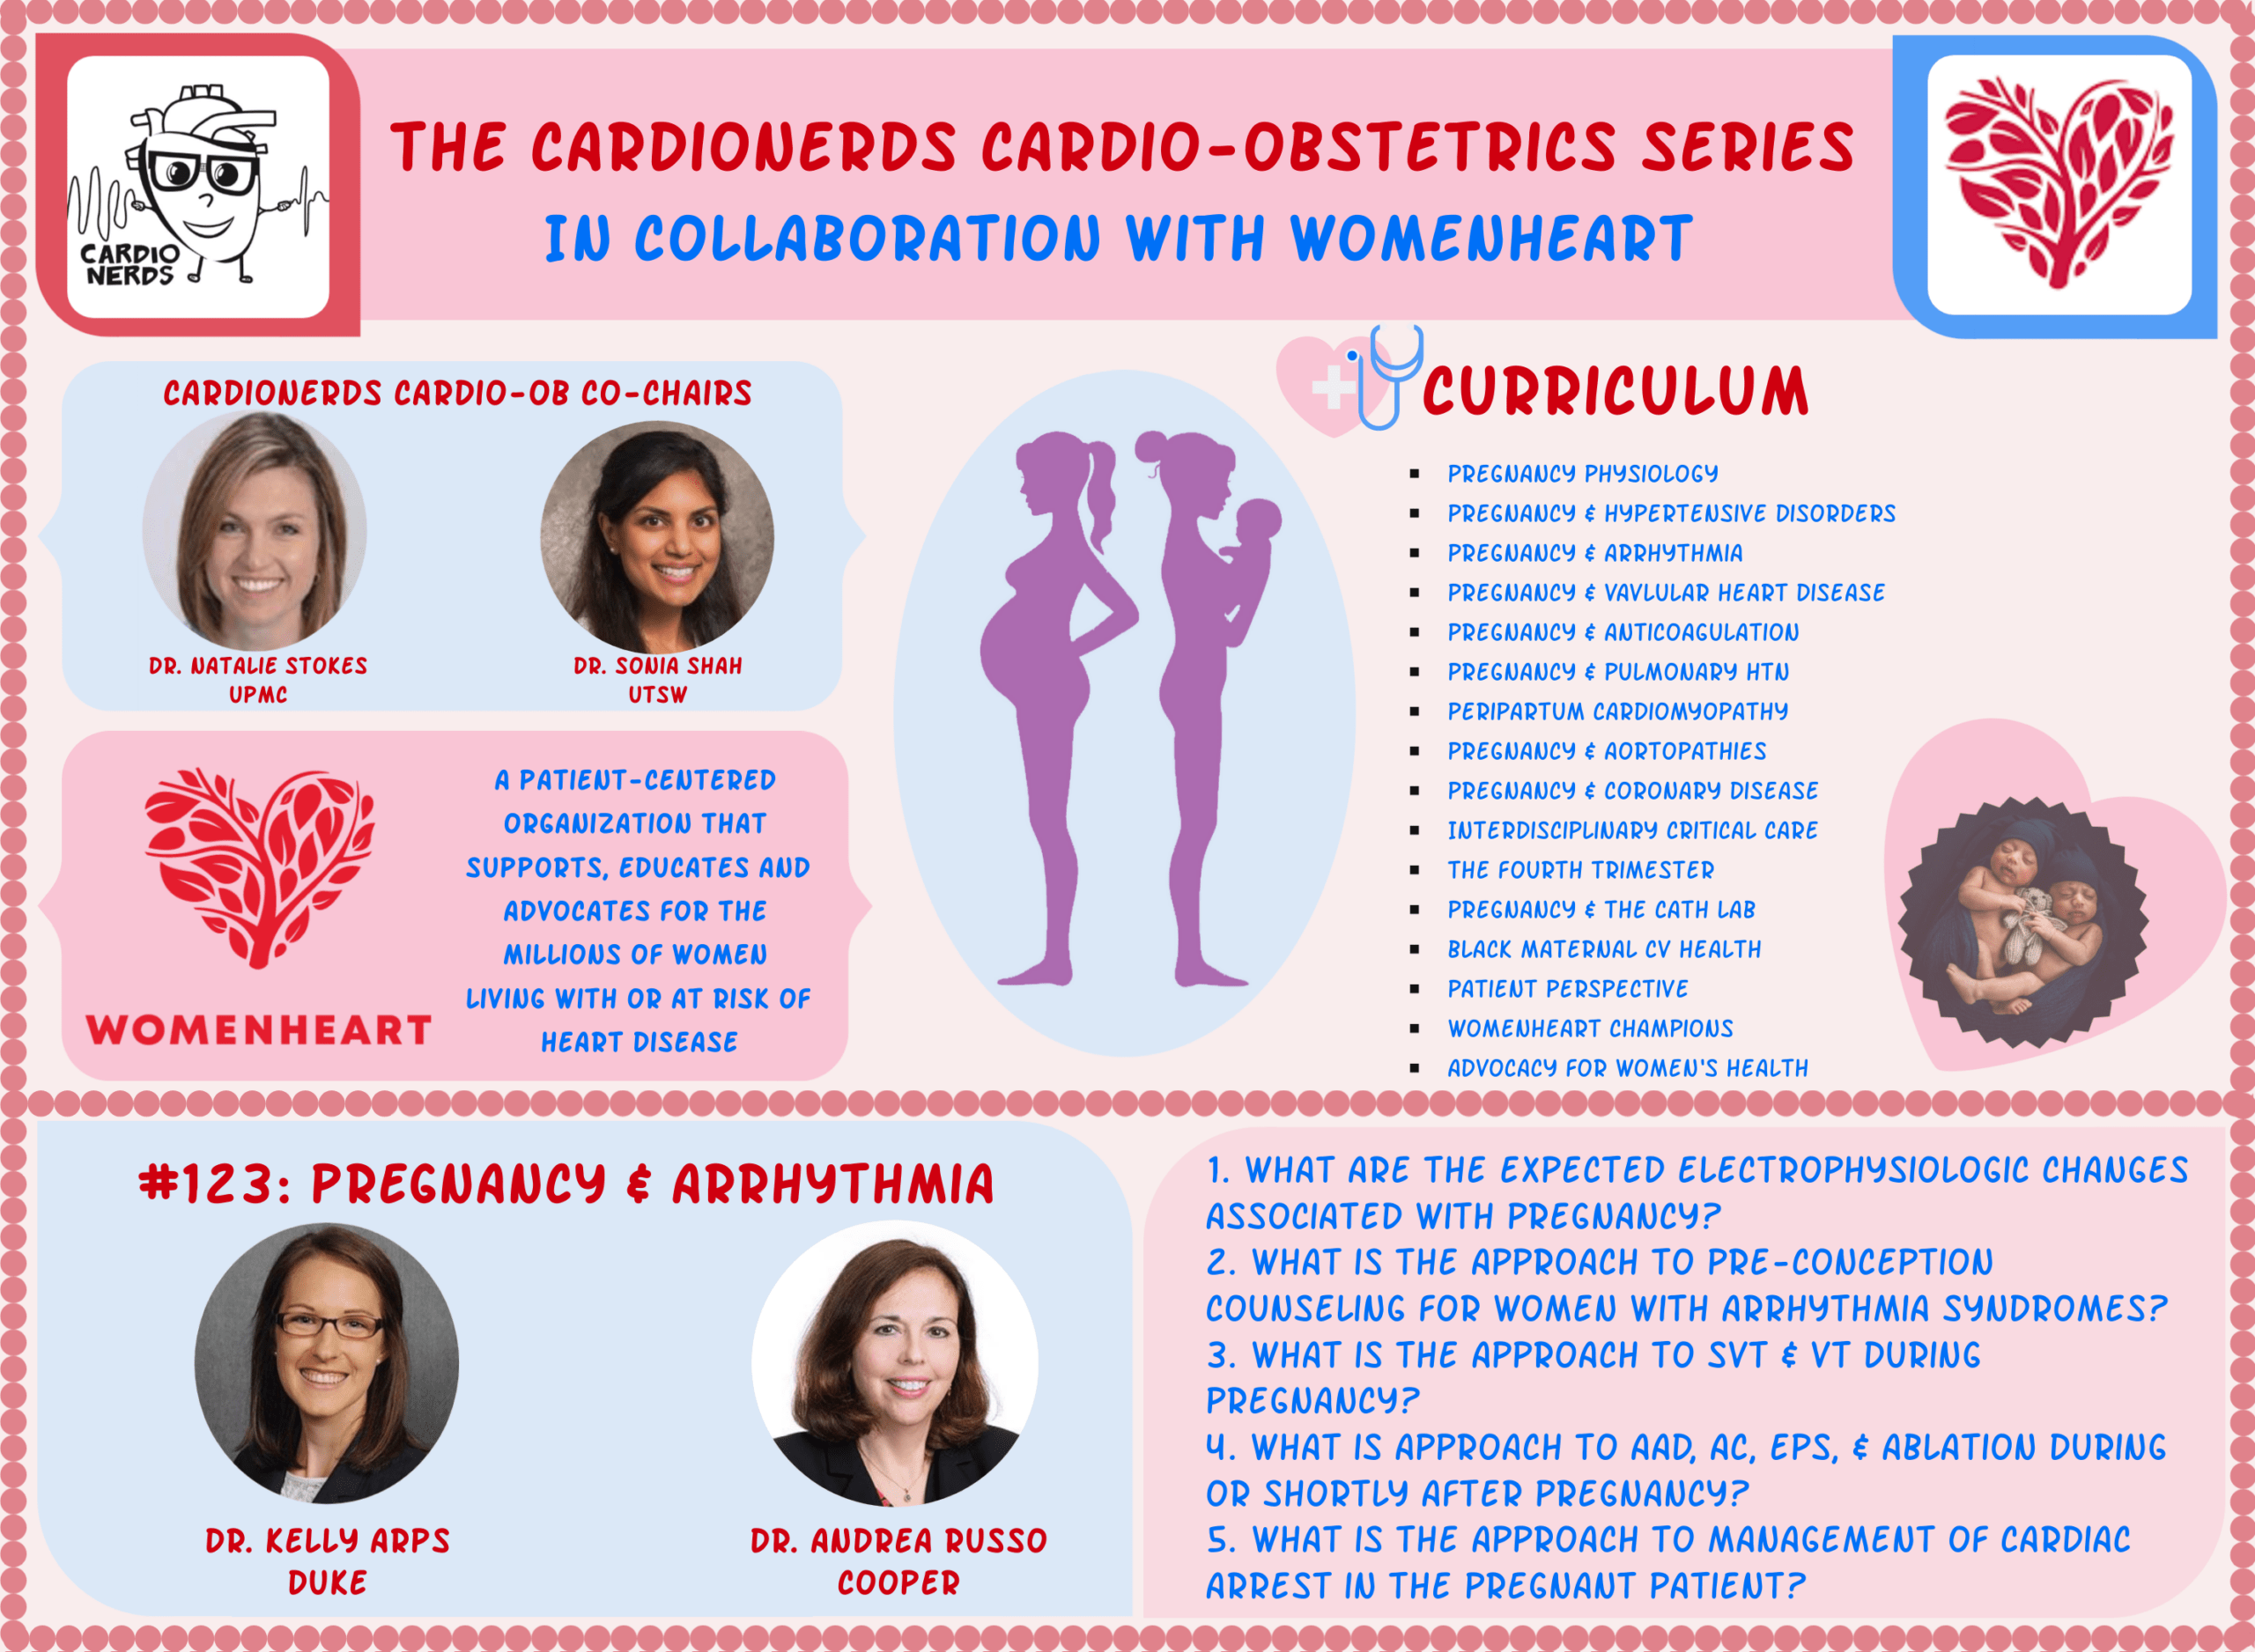 123. Cardio-Obstetrics: Pregnancy and Arrhythmia with Dr. Andrea Russo